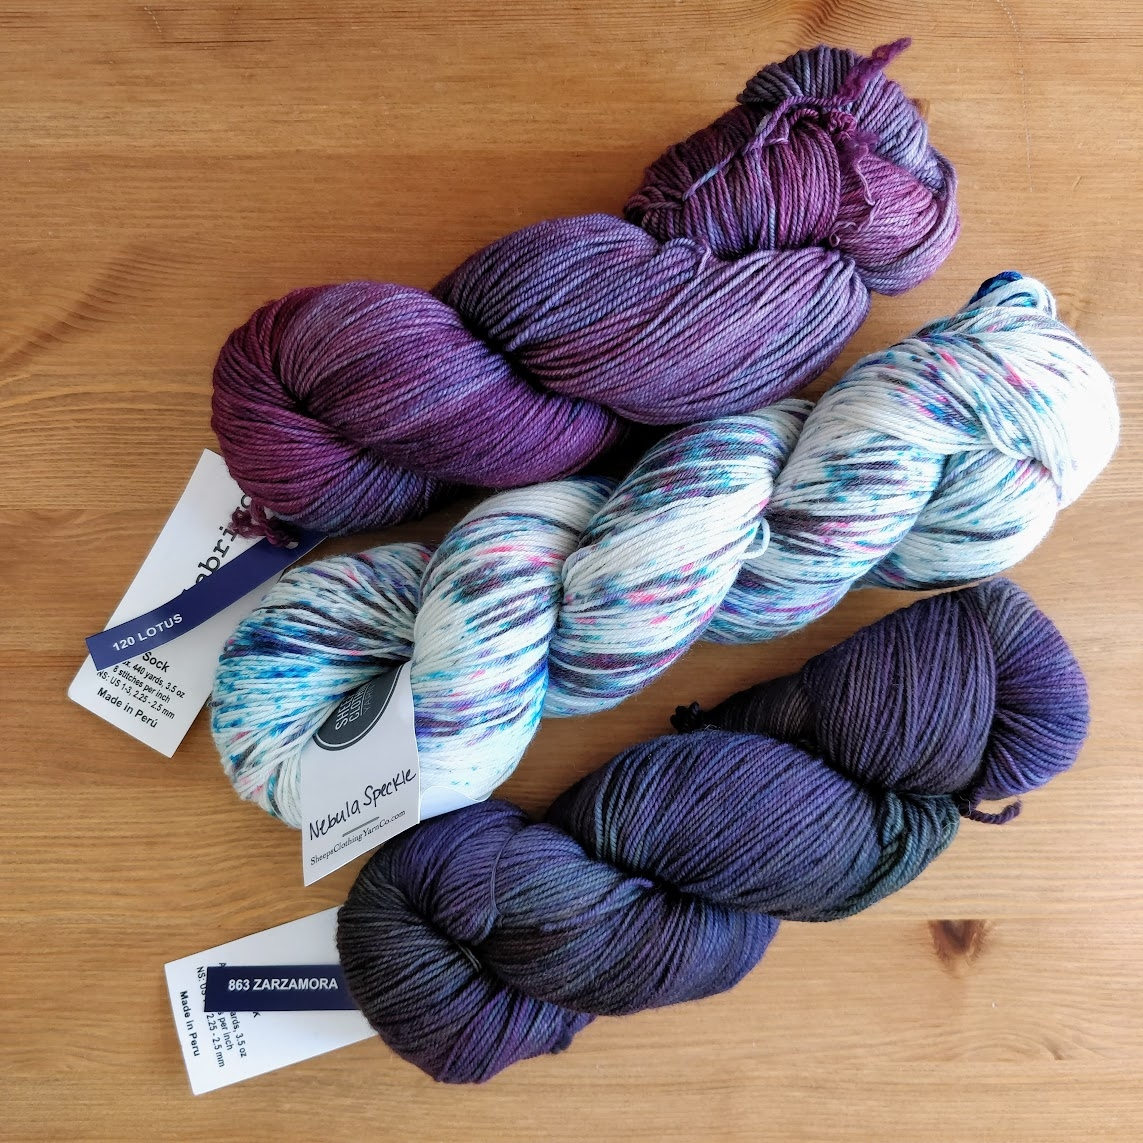 Two skeins of sock yarn in rosy-purple and blue-violet with a skein of purple, pink, and blue speckled yarn between them.